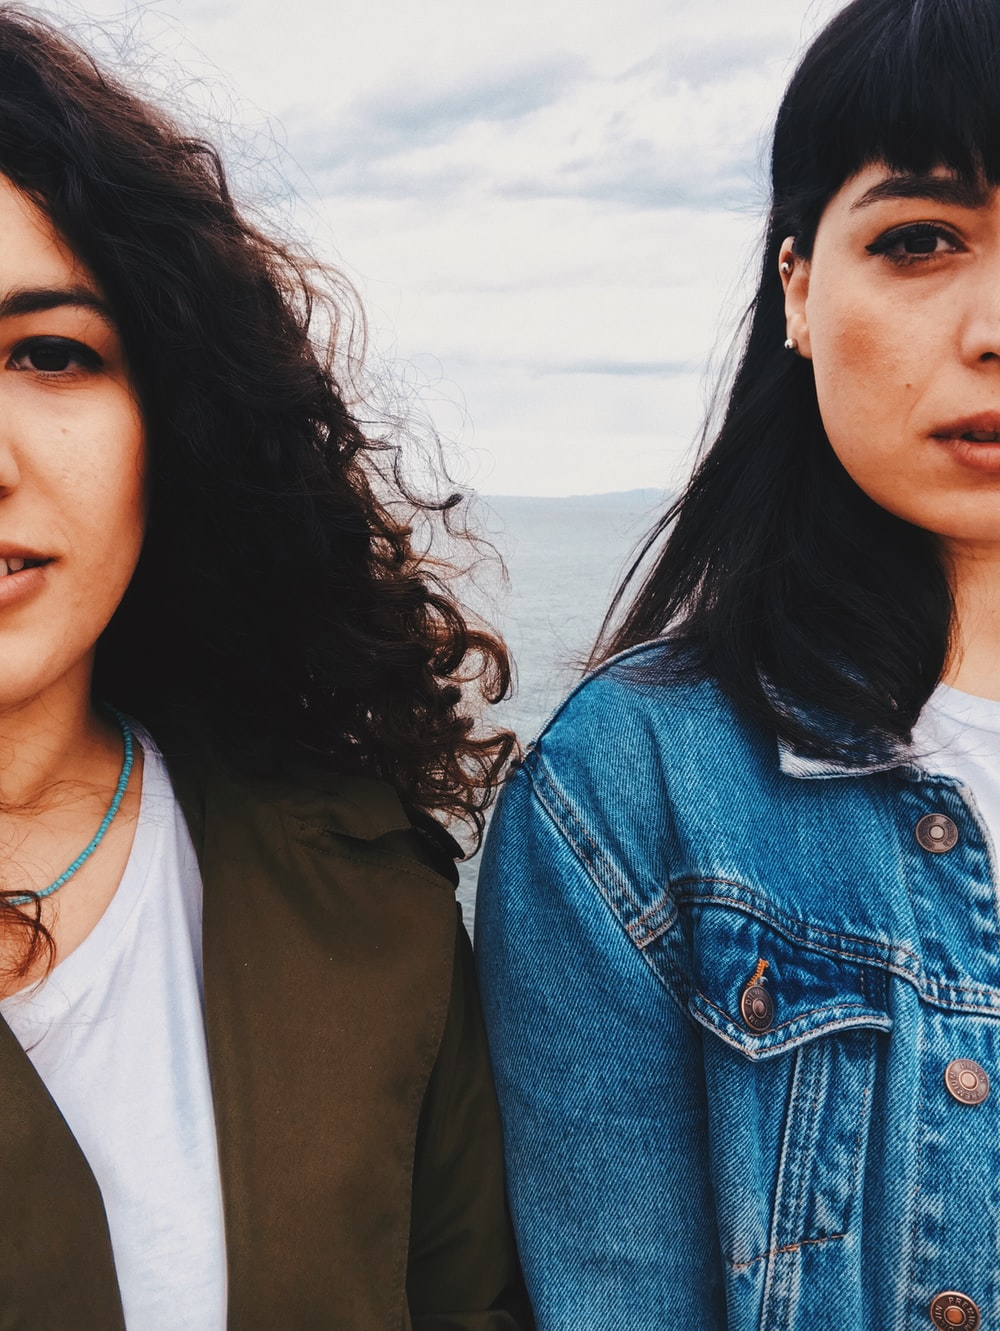 woman in blue denim button up jacket beside woman in white shirt